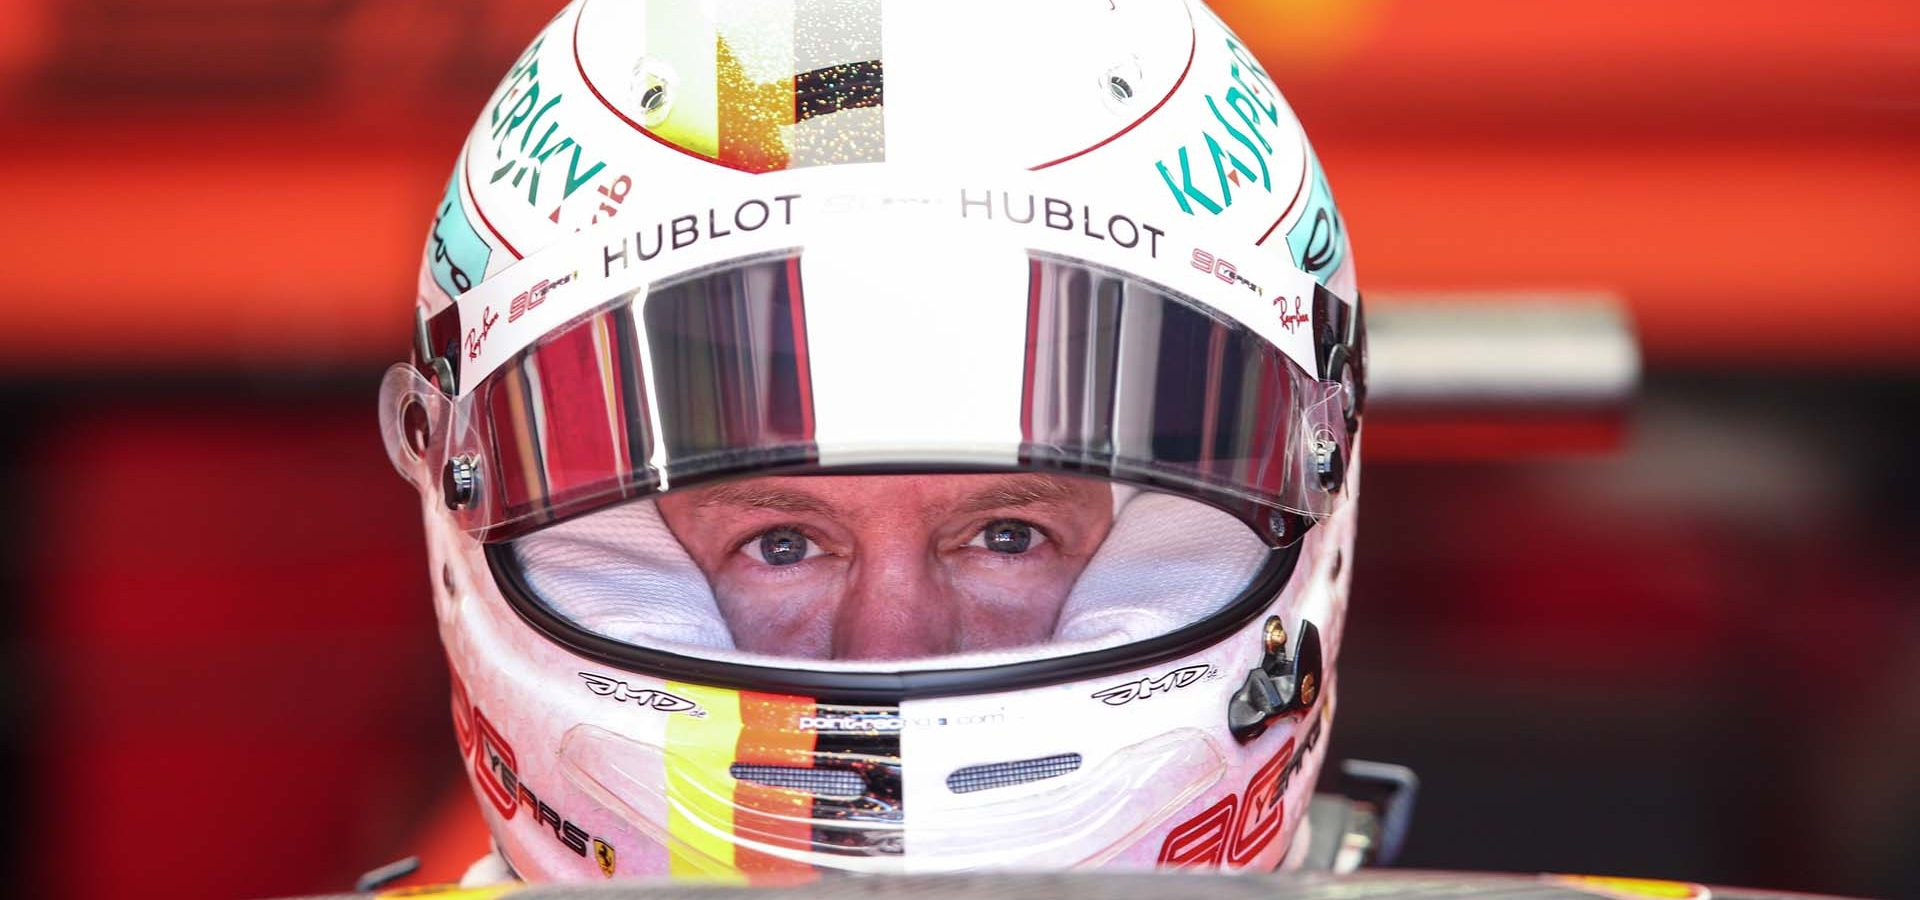 SPIELBERG,AUSTRIA,28.JUN.19 - MOTORSPORTS, FORMULA 1 - Grand Prix of Austria, Red Bull Ring, free practice. Image shows Sebastian Vettel (GER/ Ferrari). Photo: GEPA pictures/ Harald Steiner - For editorial use only. Image is free of charge.